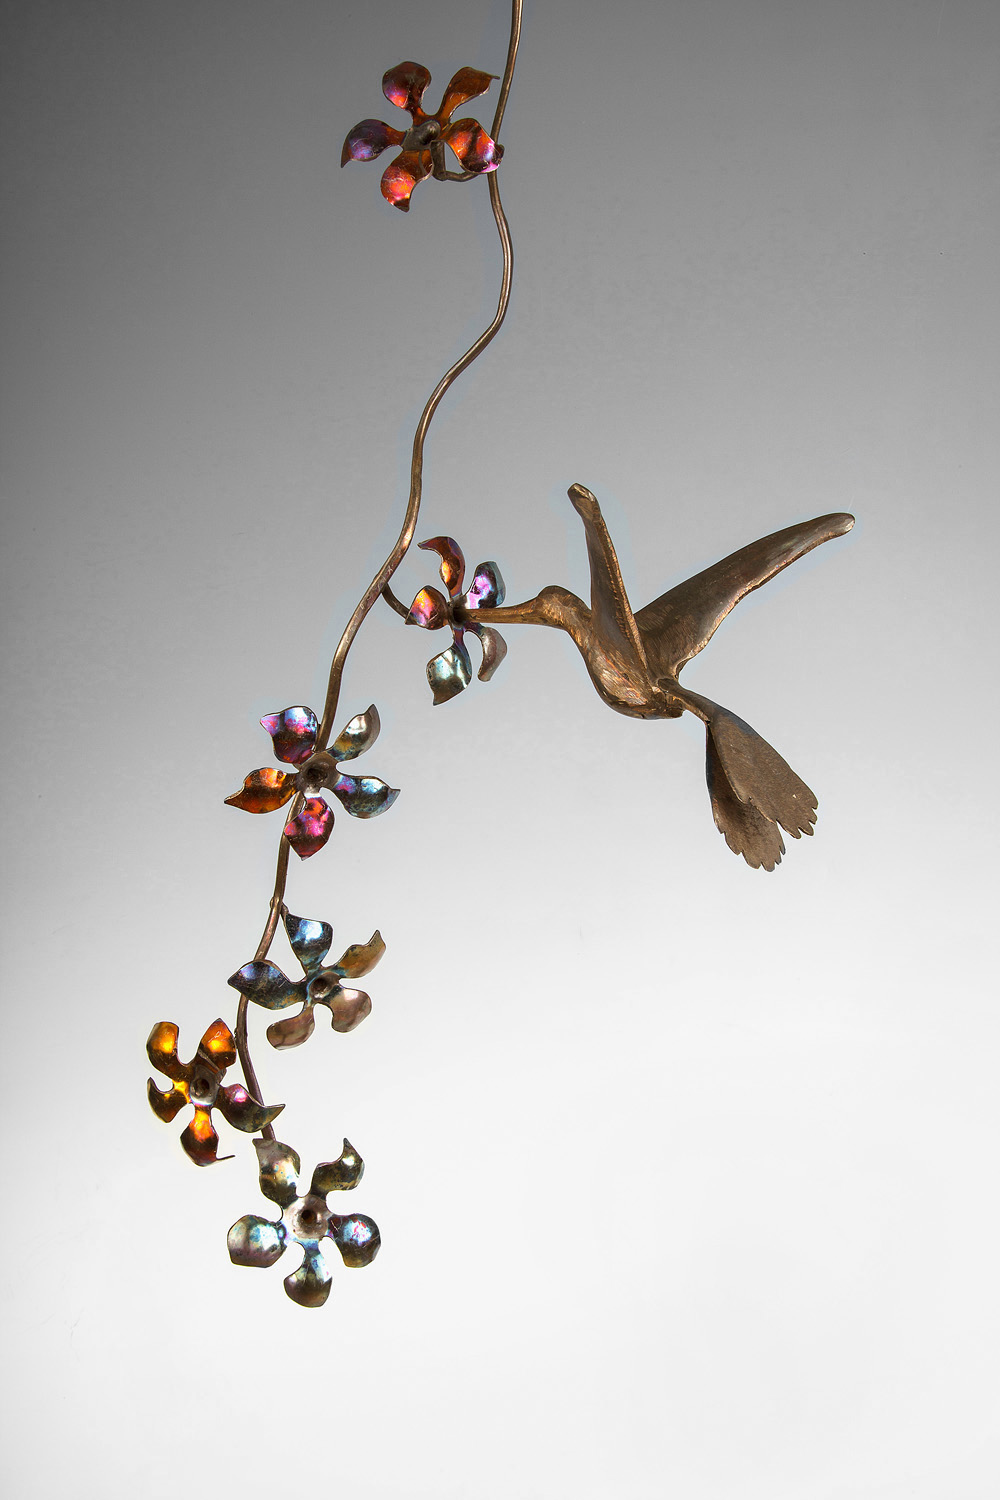 shane schaeffer's metalwork hummingbird & flowers professionally photographed by john higby of eugene oregon